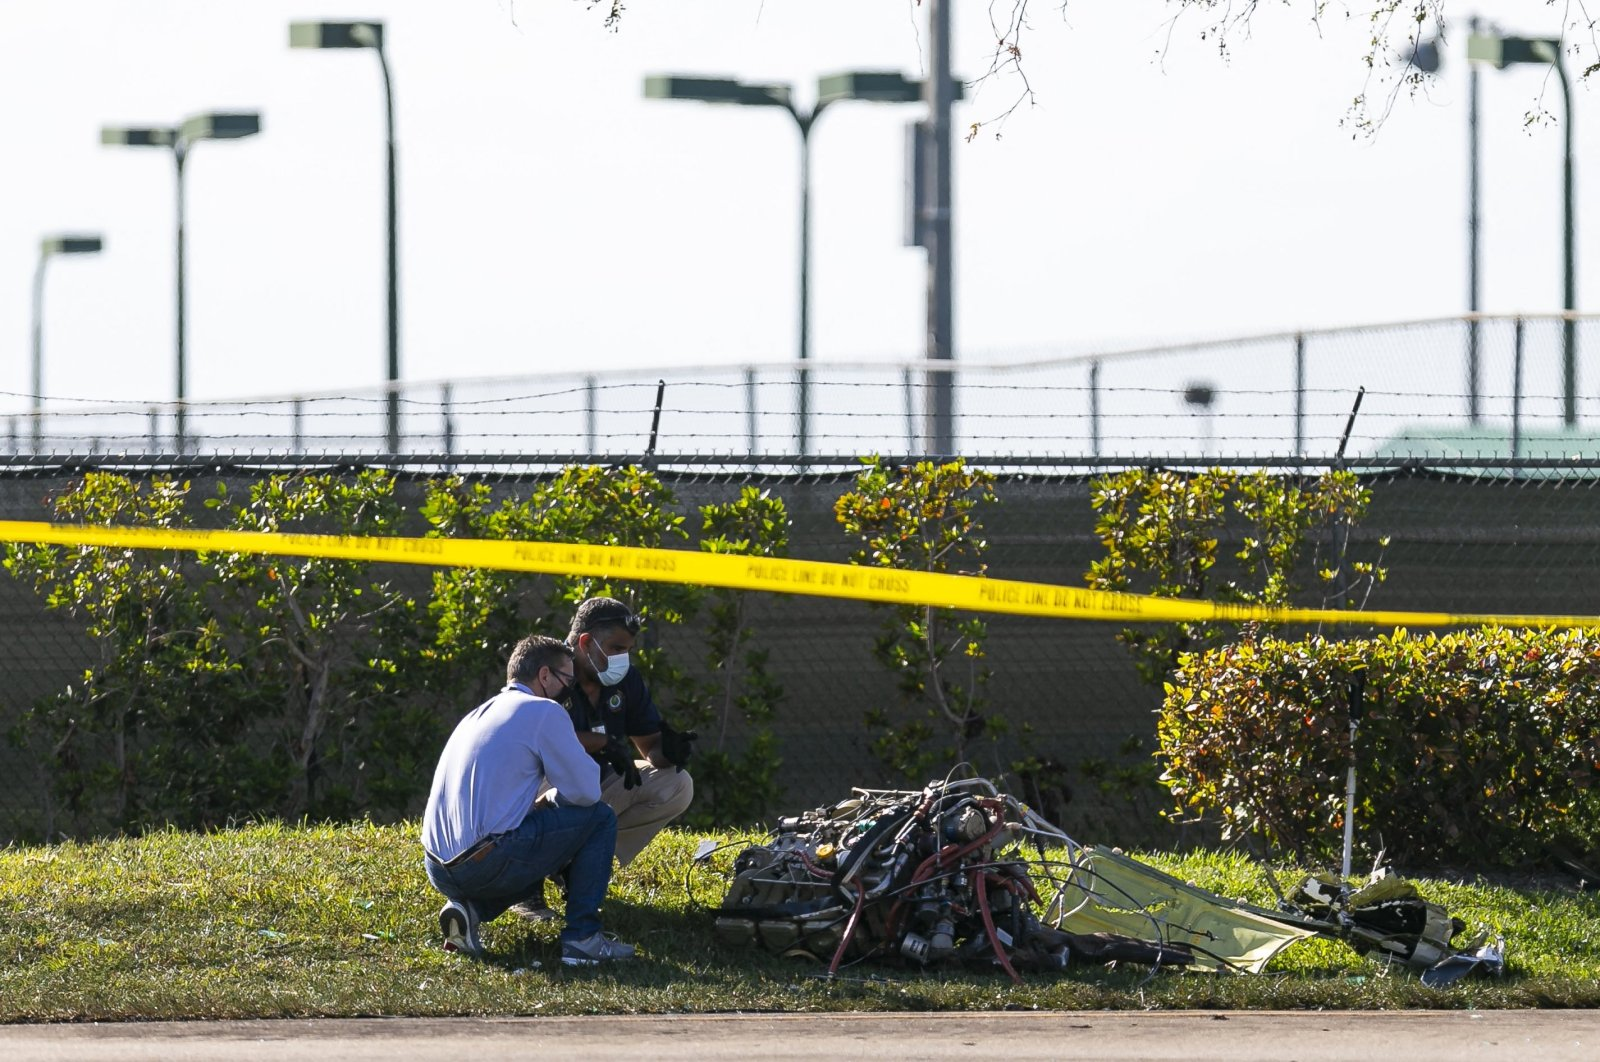 First responders look through debris from an accident scene after a small plane crashed near the 1300 block of Southwest 72nd Avenue in Pembroke Pines, Florida on Monday, March 15, 2021. (Reuters Photo)